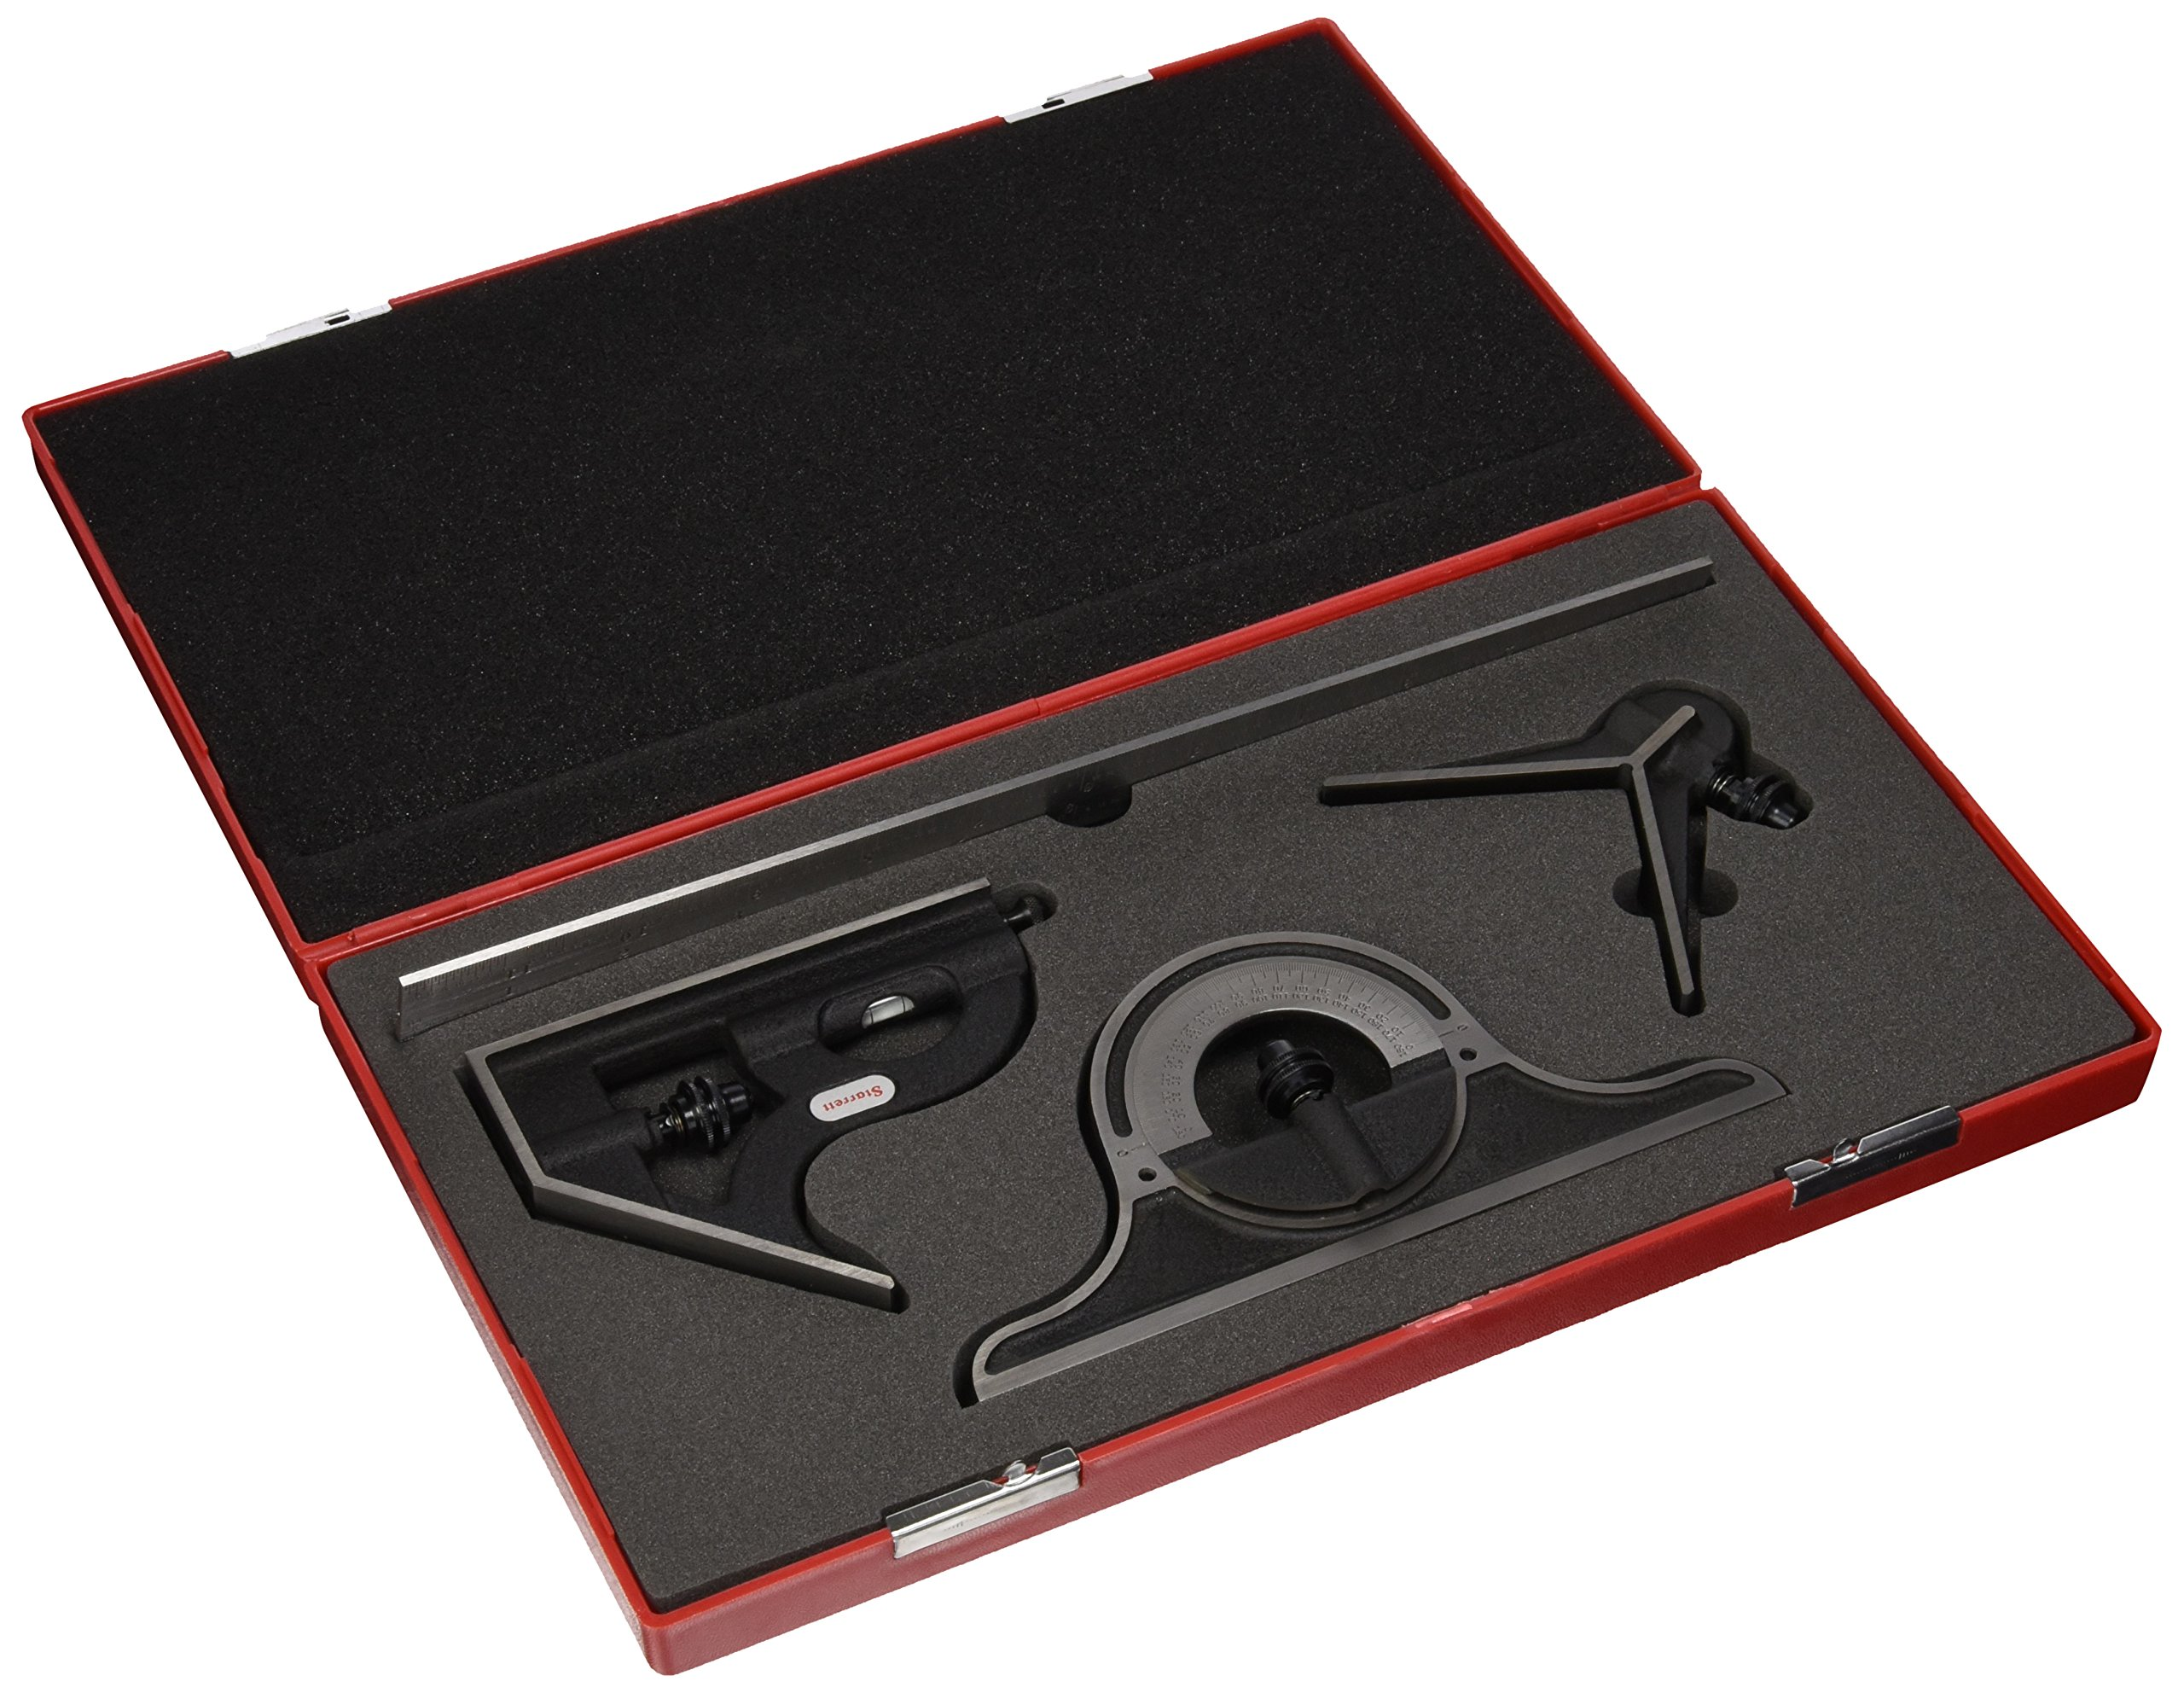 Starrett 9-12-4R 12-Inch Quick Read Combination Square Set with Cast Iron Head by Starrett